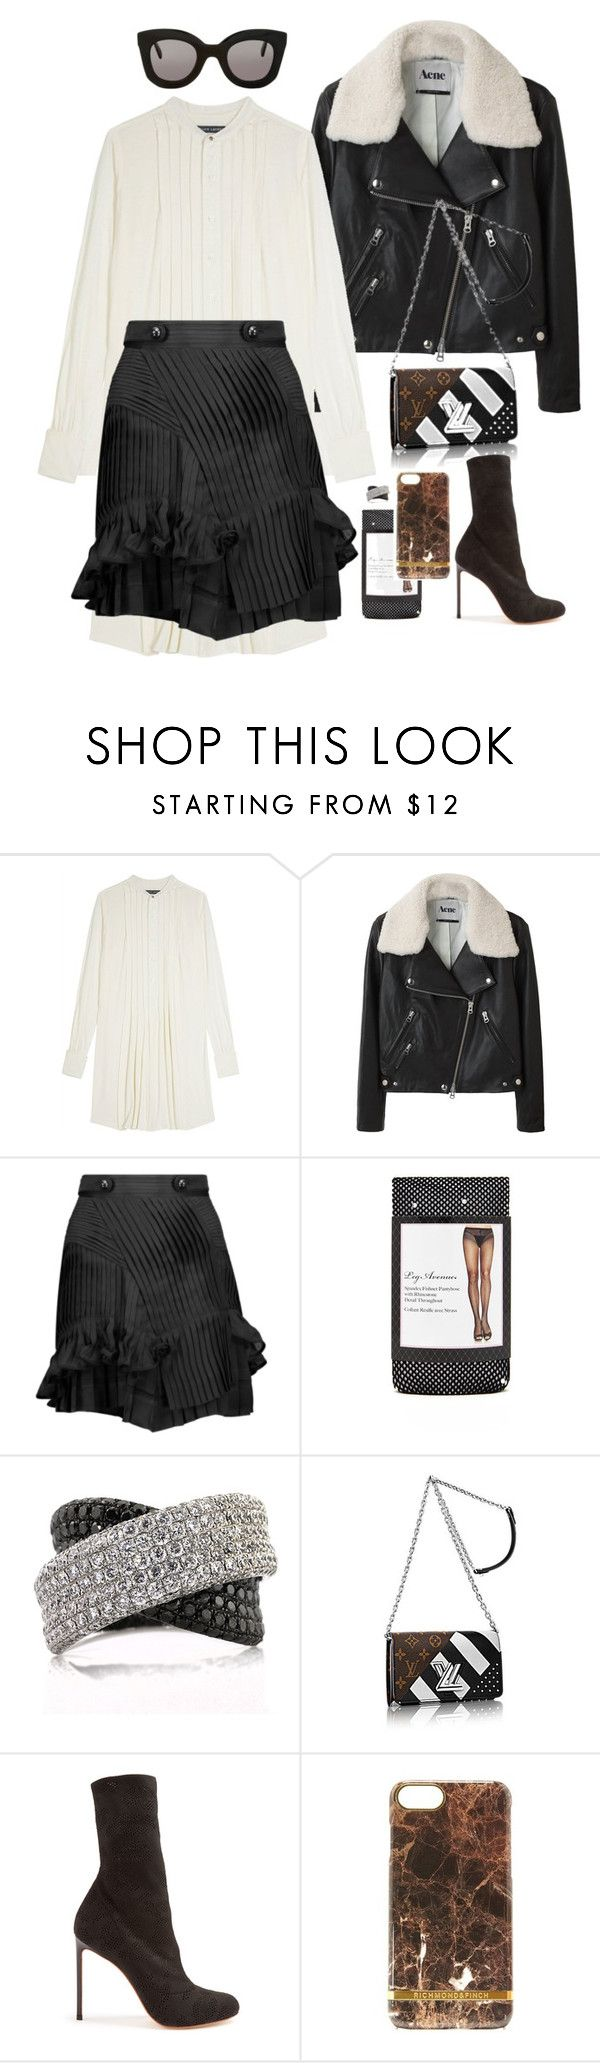 """""""Untitled #1069"""" by loveraige ❤ liked on Polyvore featuring Ralph Lauren, Acne Studios, Isabel Marant, Forever 21, Mark Broumand, Francesco Russo, Richmond & Finch and CÉLINE"""